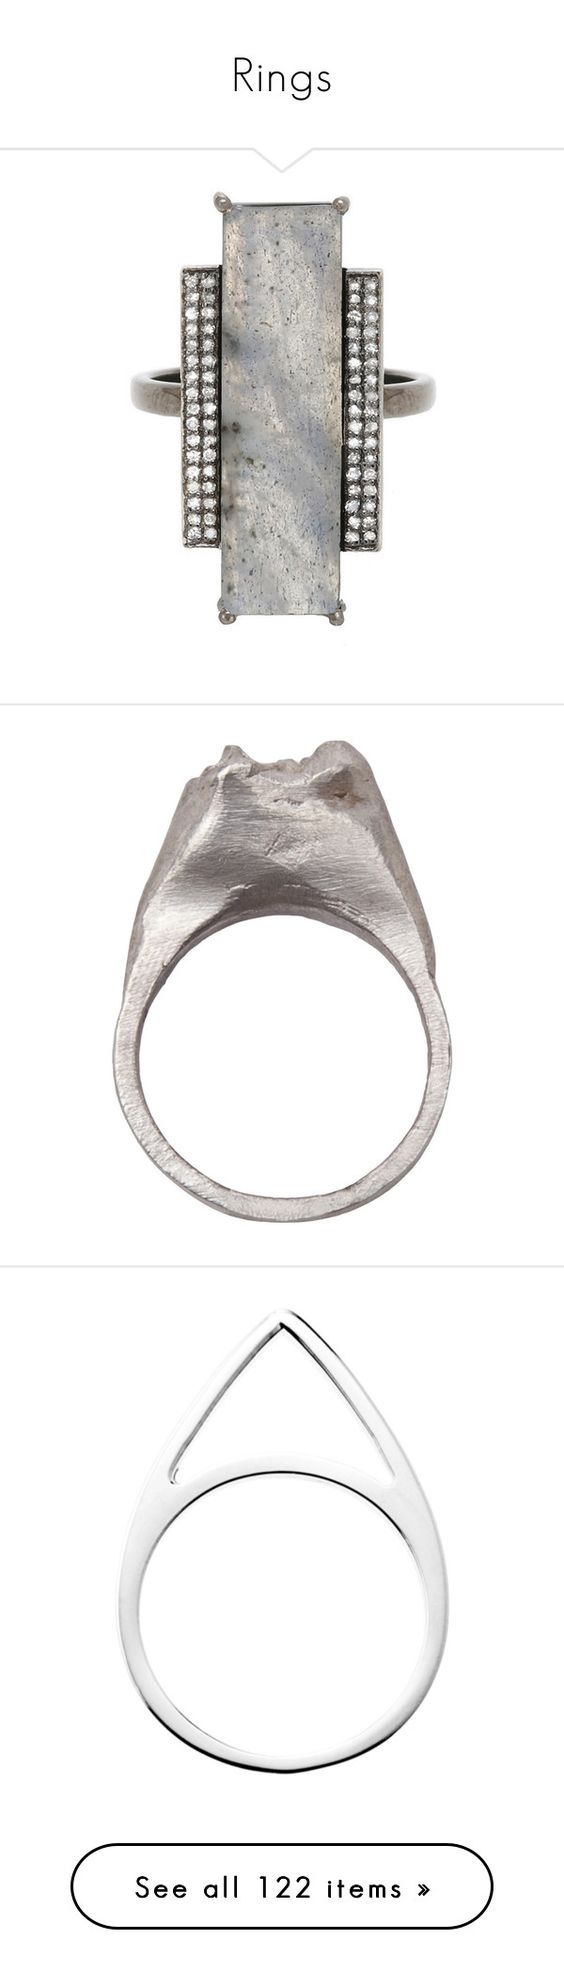 """Rings"" by eva-jez ❤ liked on Polyvore featuring jewelry, rings, grey, white diamond ring, rectangle rings, grey jewelry, adornia, accessories, fillers and anillos"